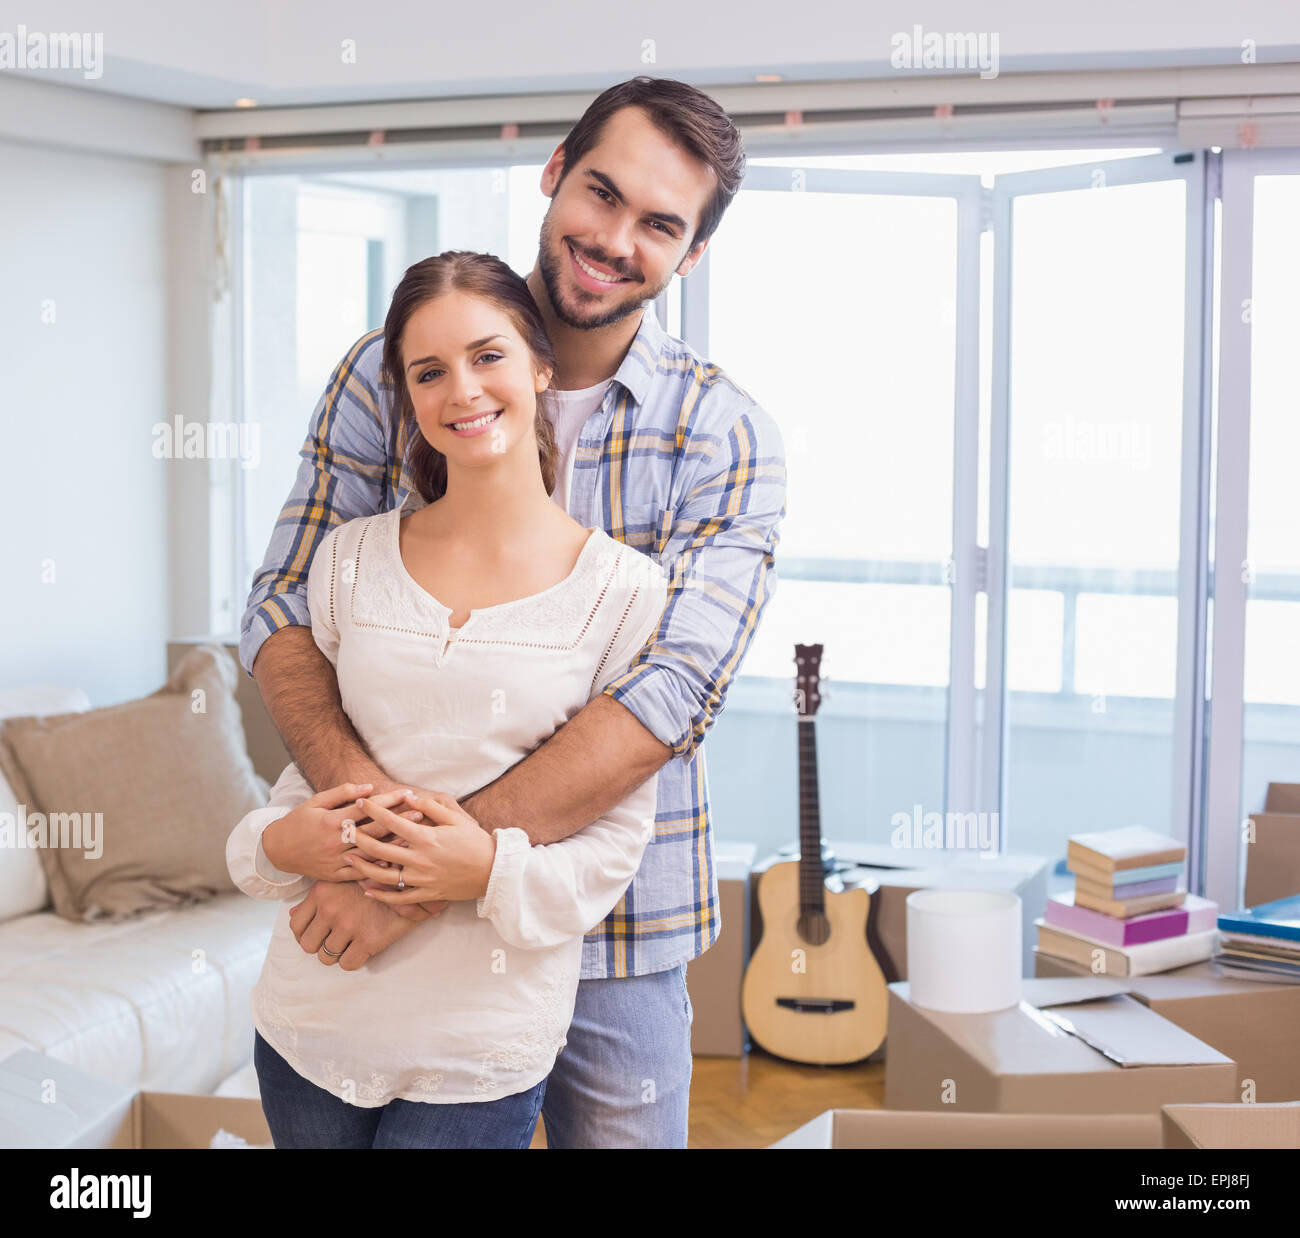 Cute couple hugging and smiling at camera - Stock Image